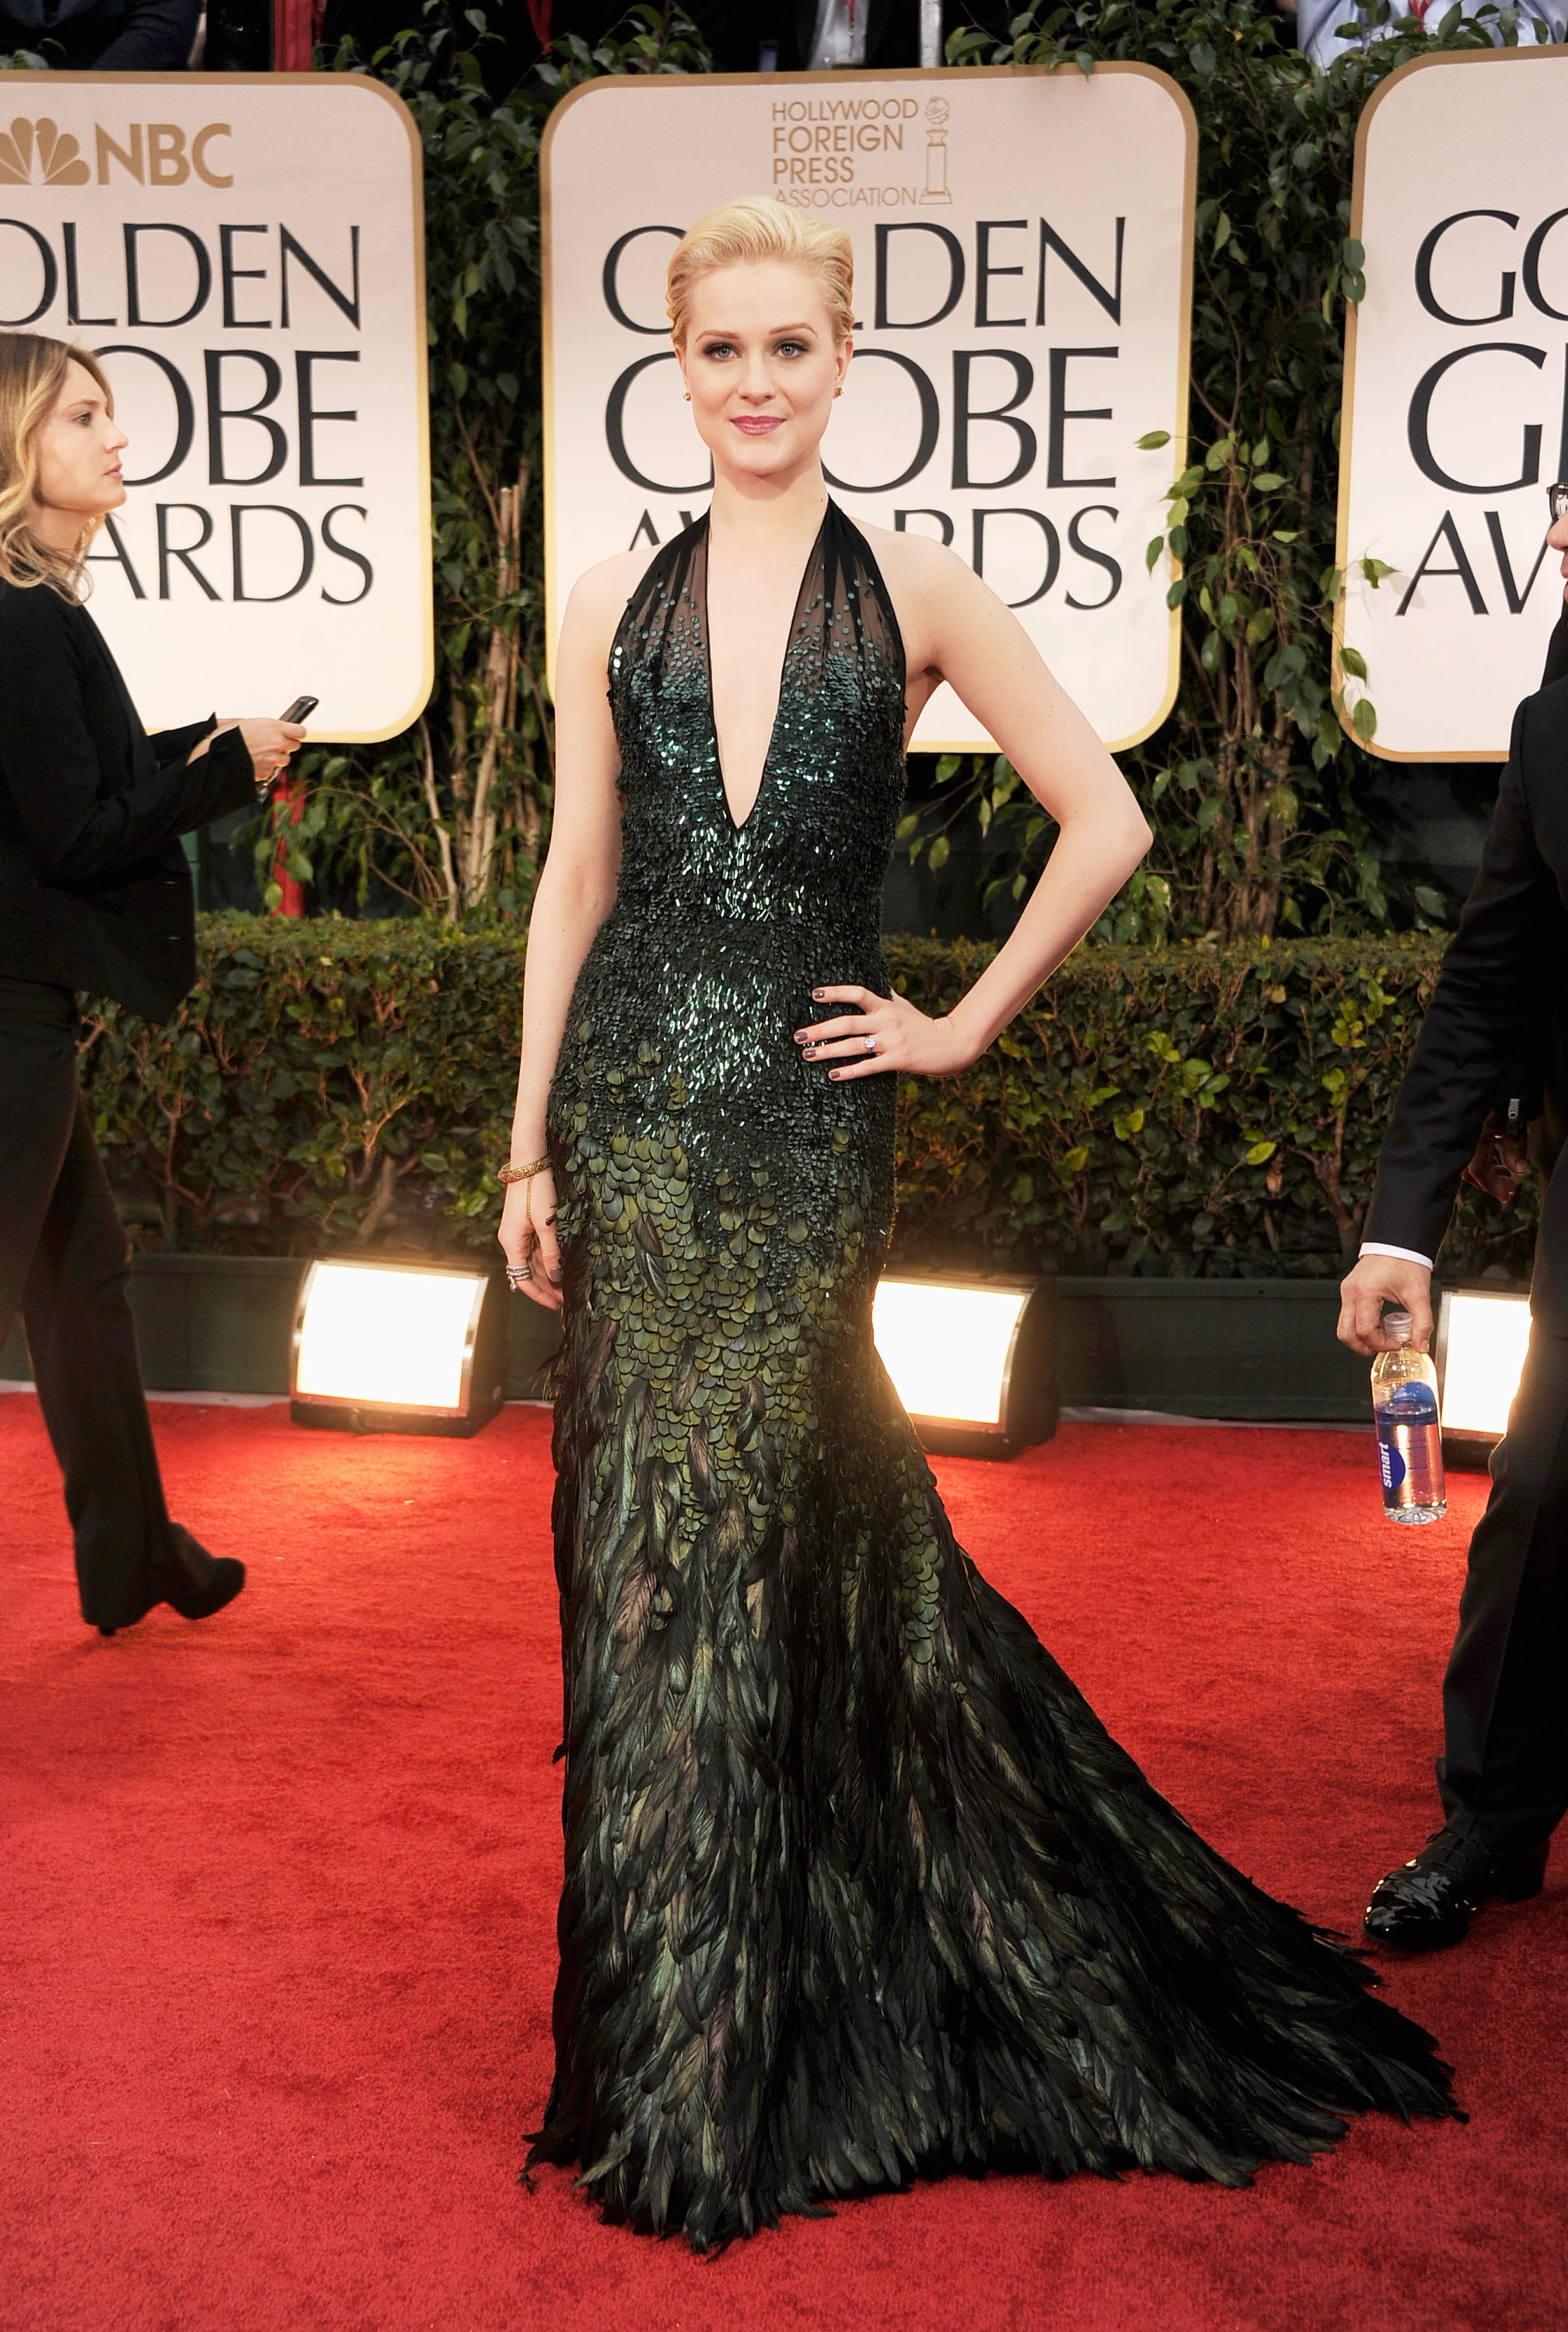 Evan Rachel Wood in Gucci Premiere at the Golden Globes.